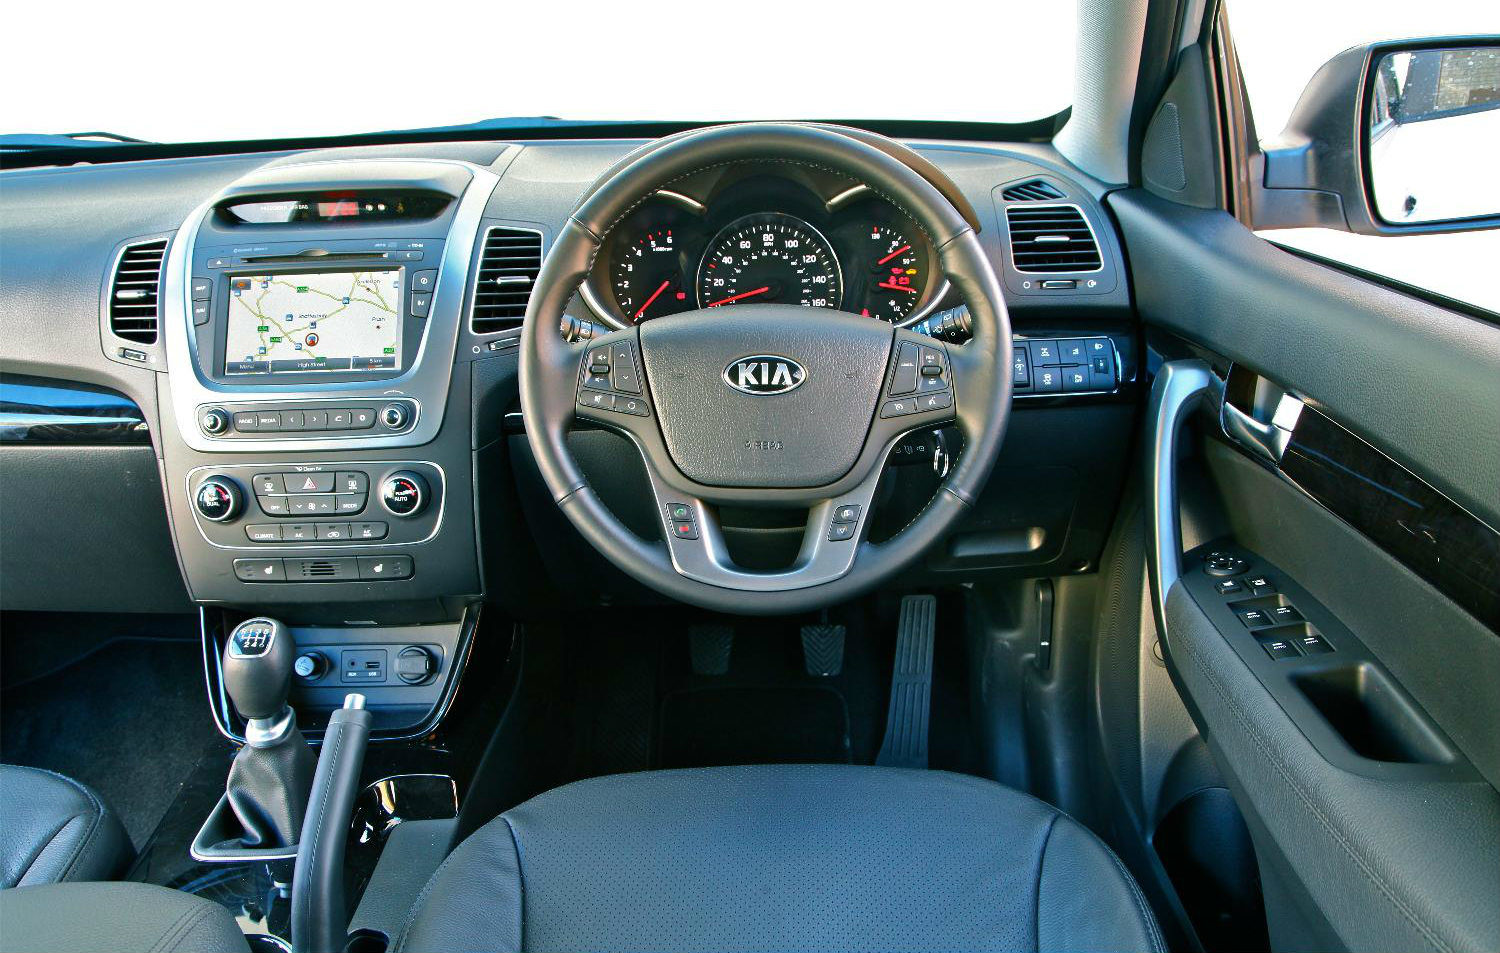 image of a kia sorento car interior